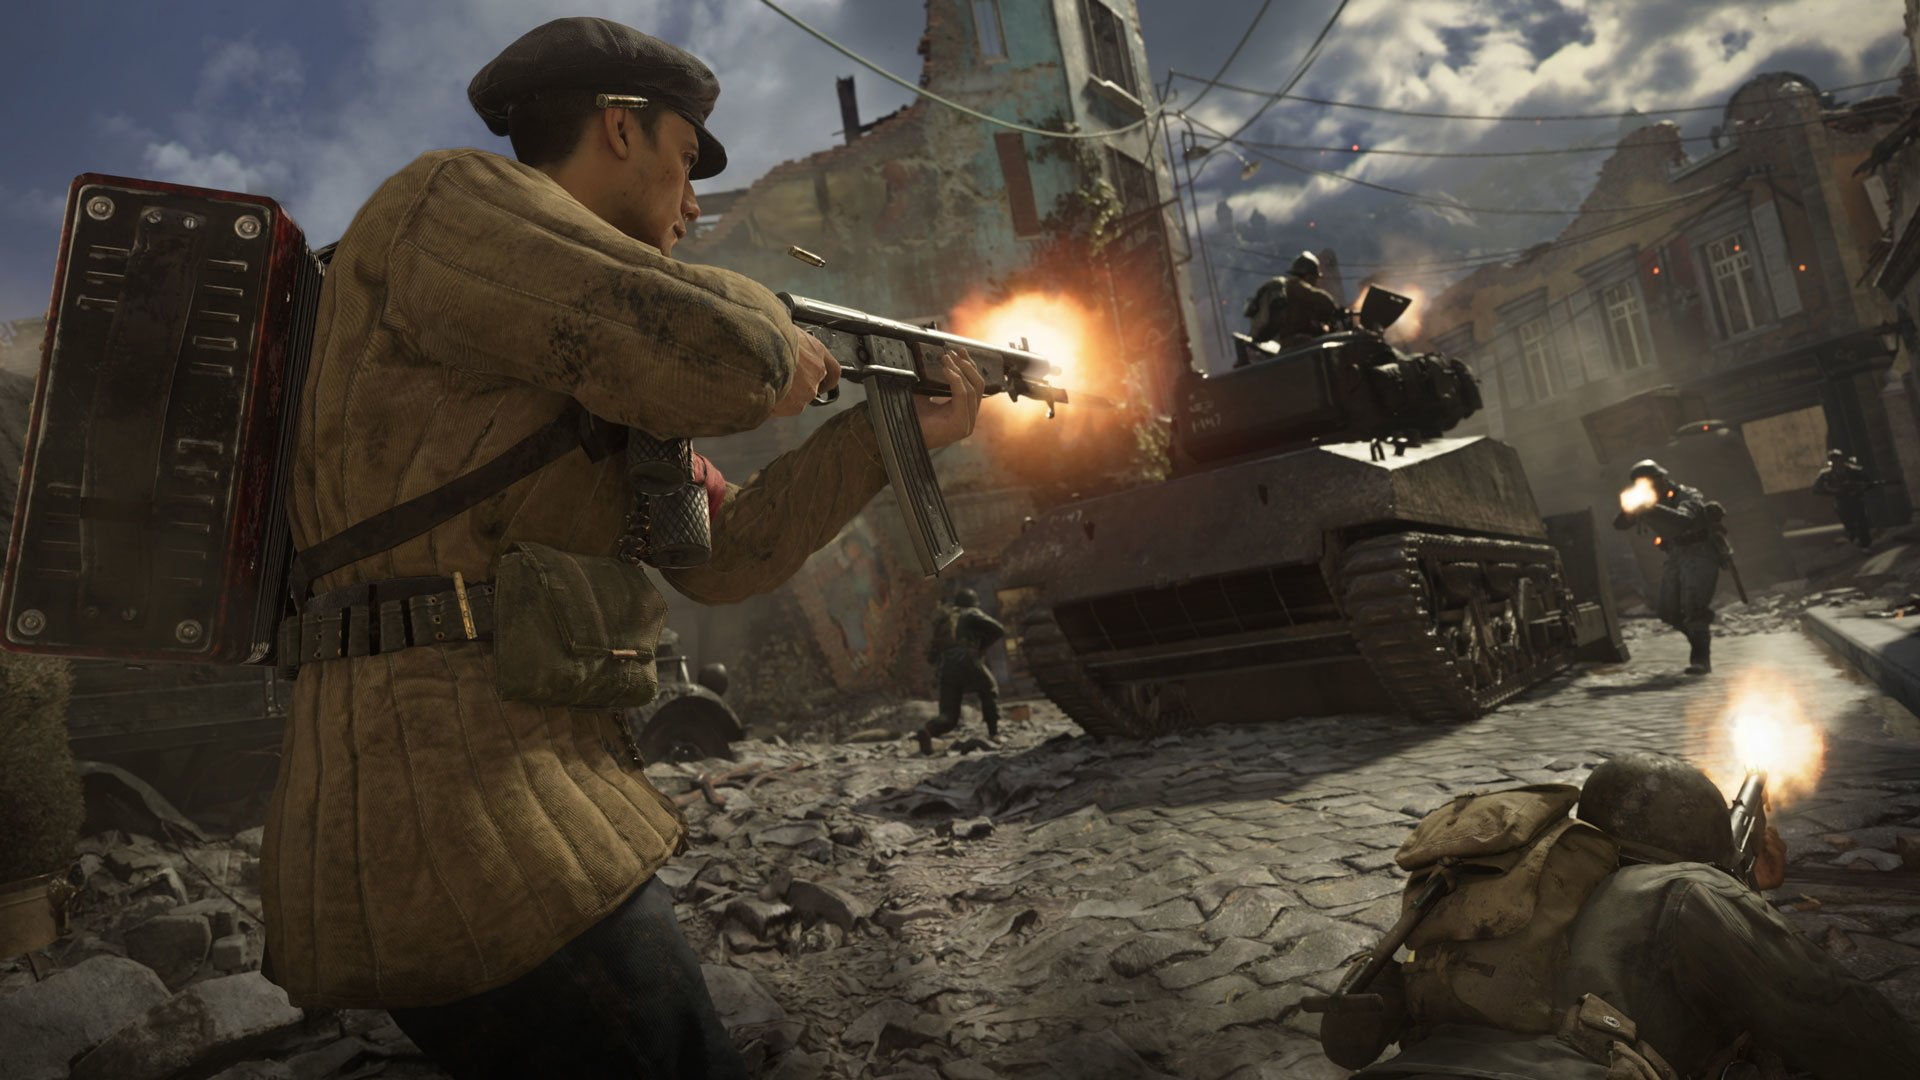 Call Of Duty Wwii Hd Wallpaper Background Image 1920x1080